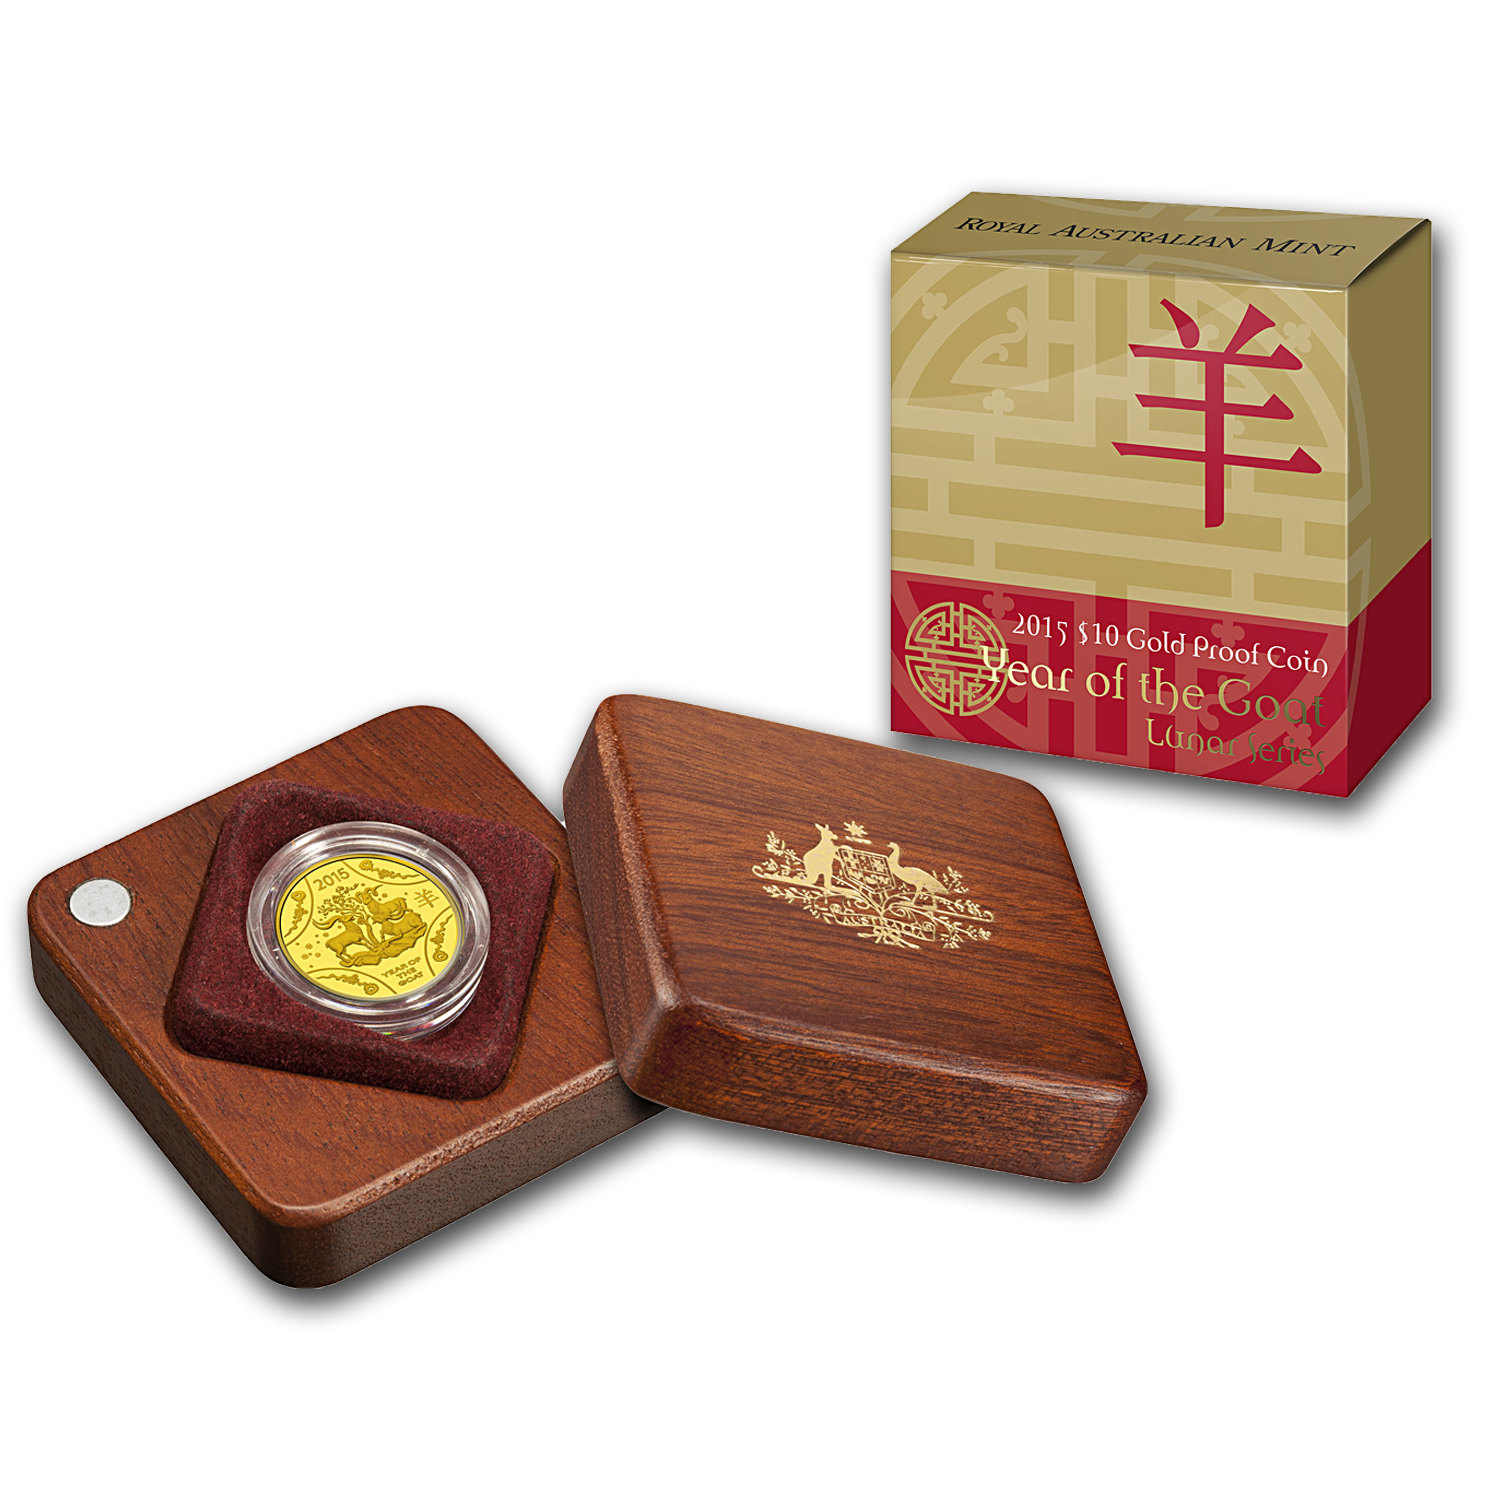 Royal Australian Mint 2015 1/10 oz Gold Proof - Year of the Goat